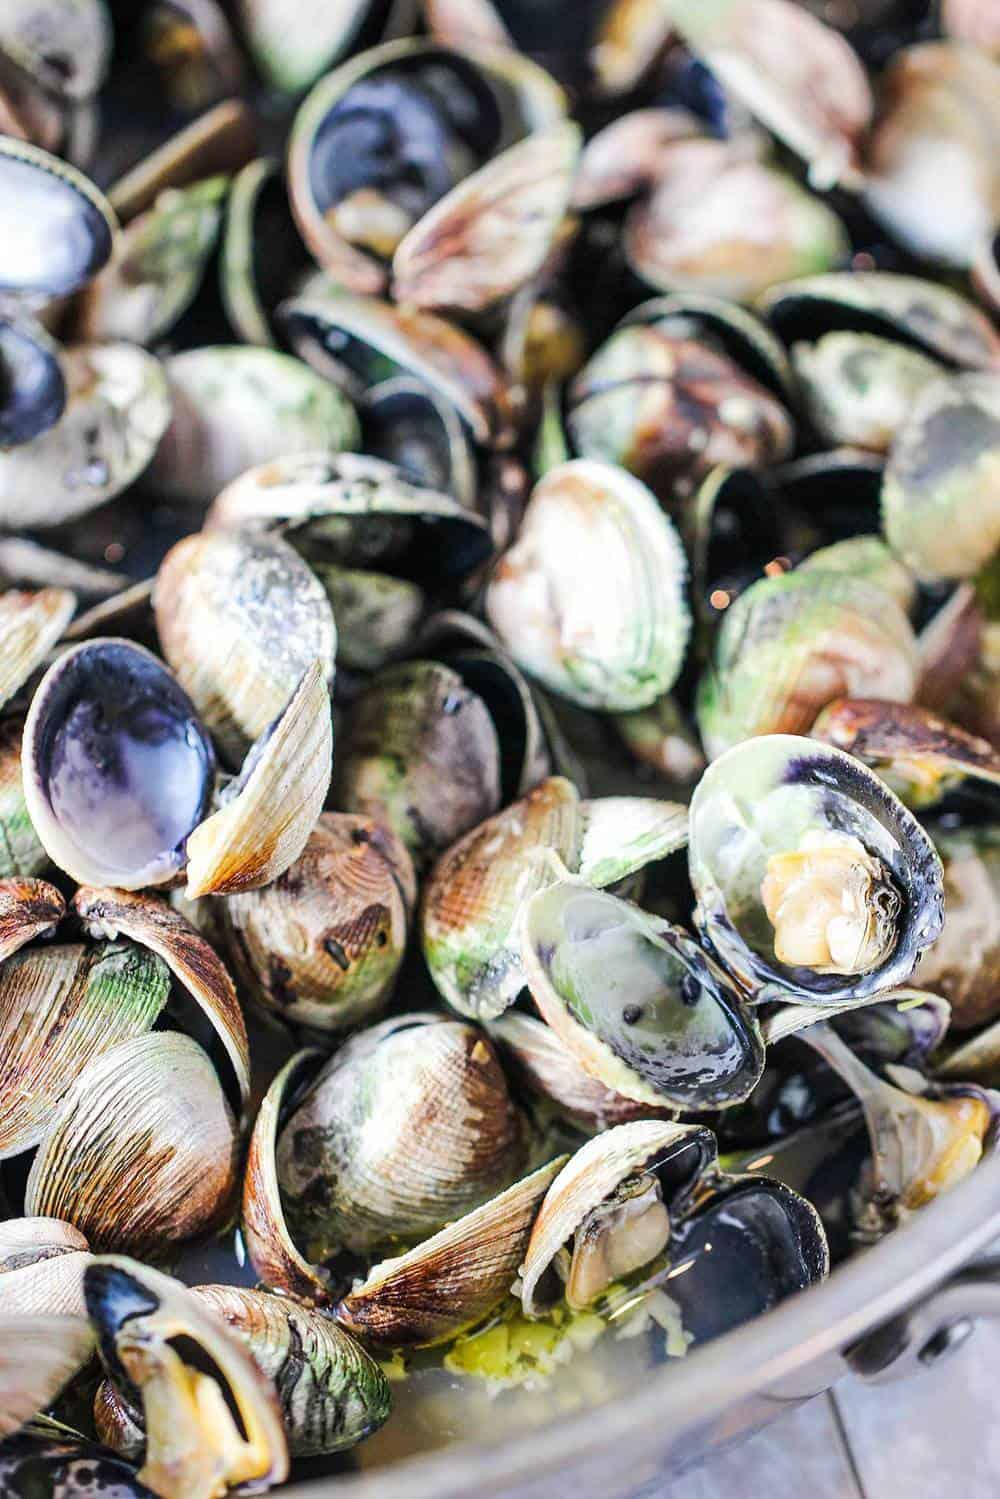 Small clams that have been steamed in a large pot and have opened.